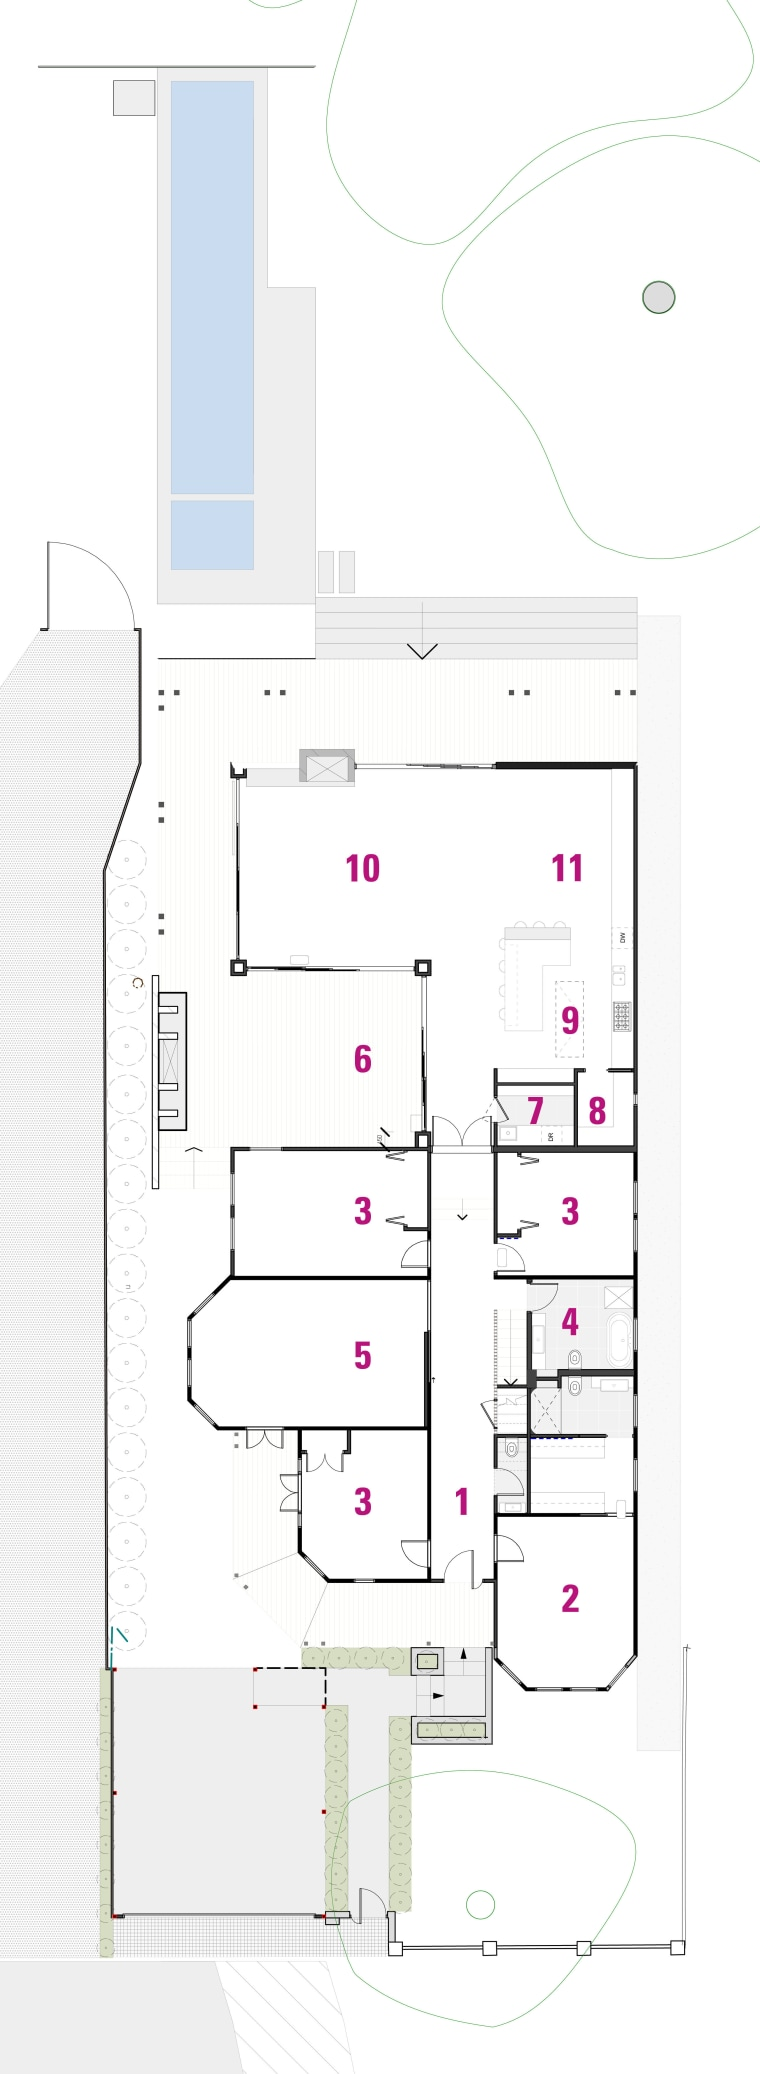 Floor plan angle, area, design, diagram, drawing, floor plan, line, plan, product, product design, structure, white